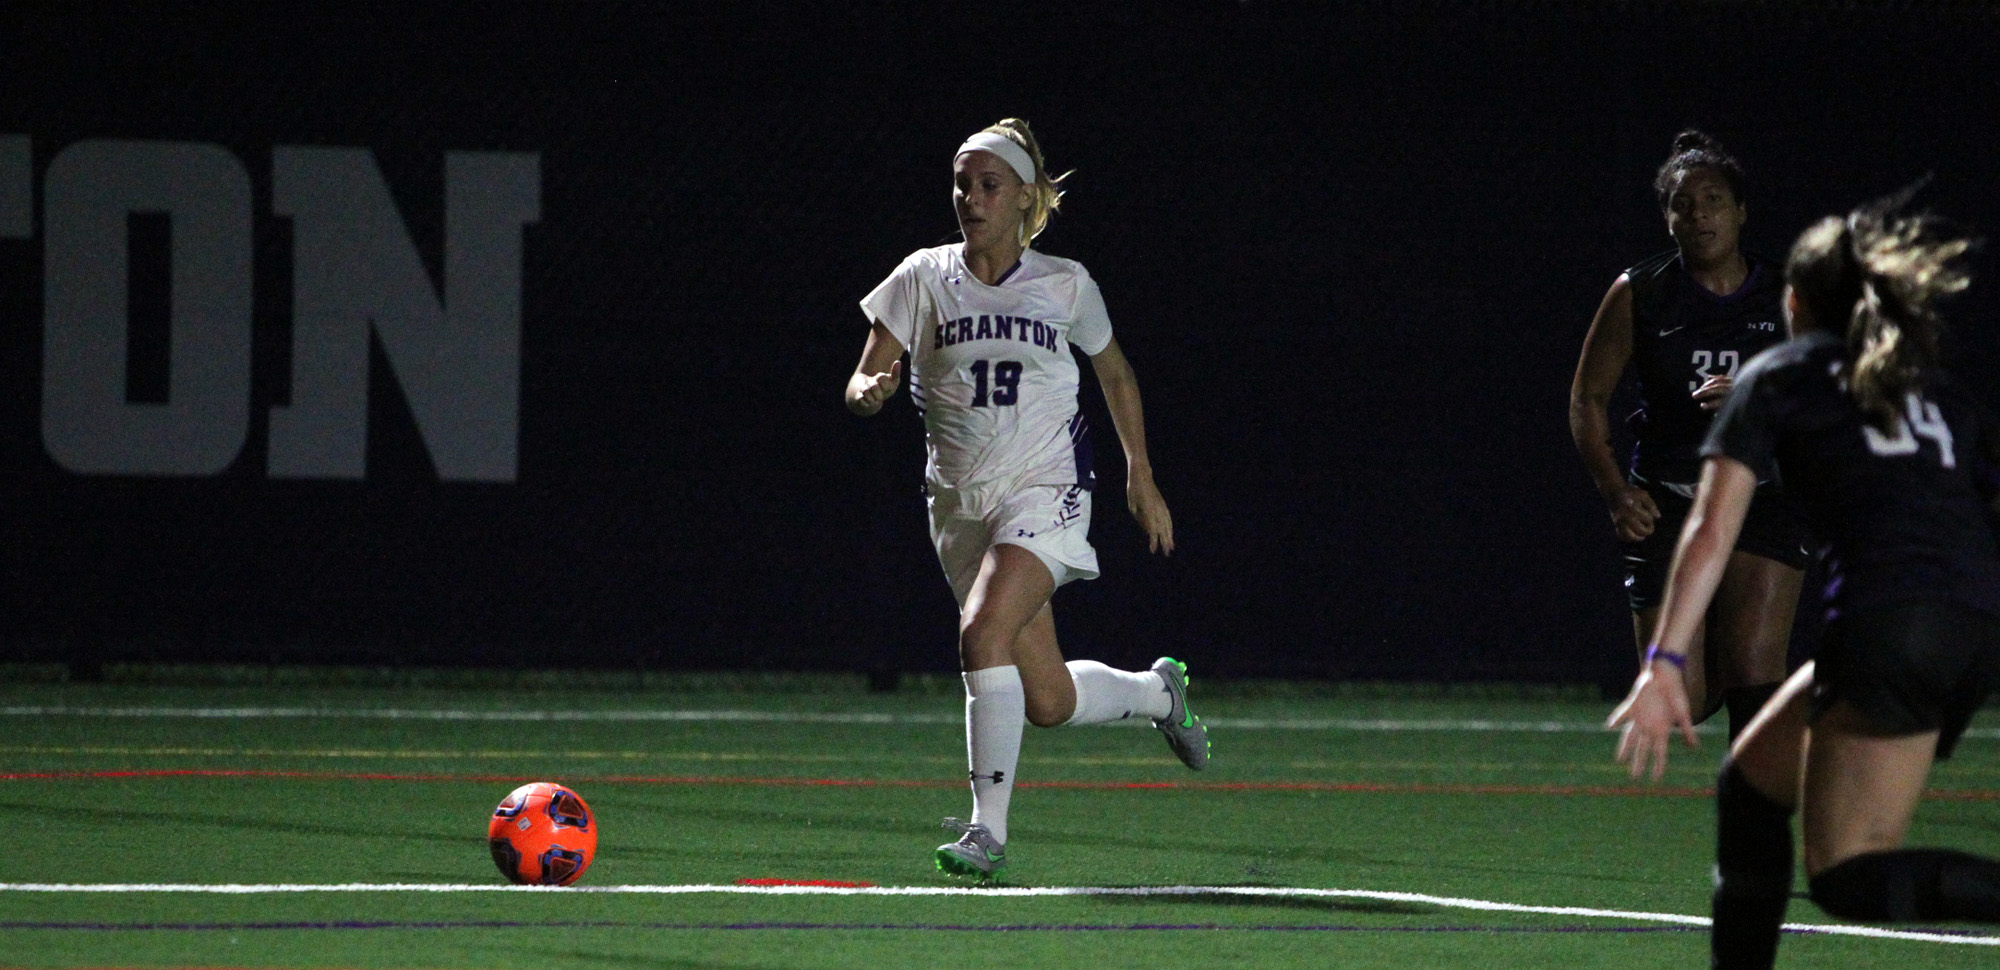 Senior forward Jamie Hreniuk scored her sixth and seventh goals of the season on Tuesday night.